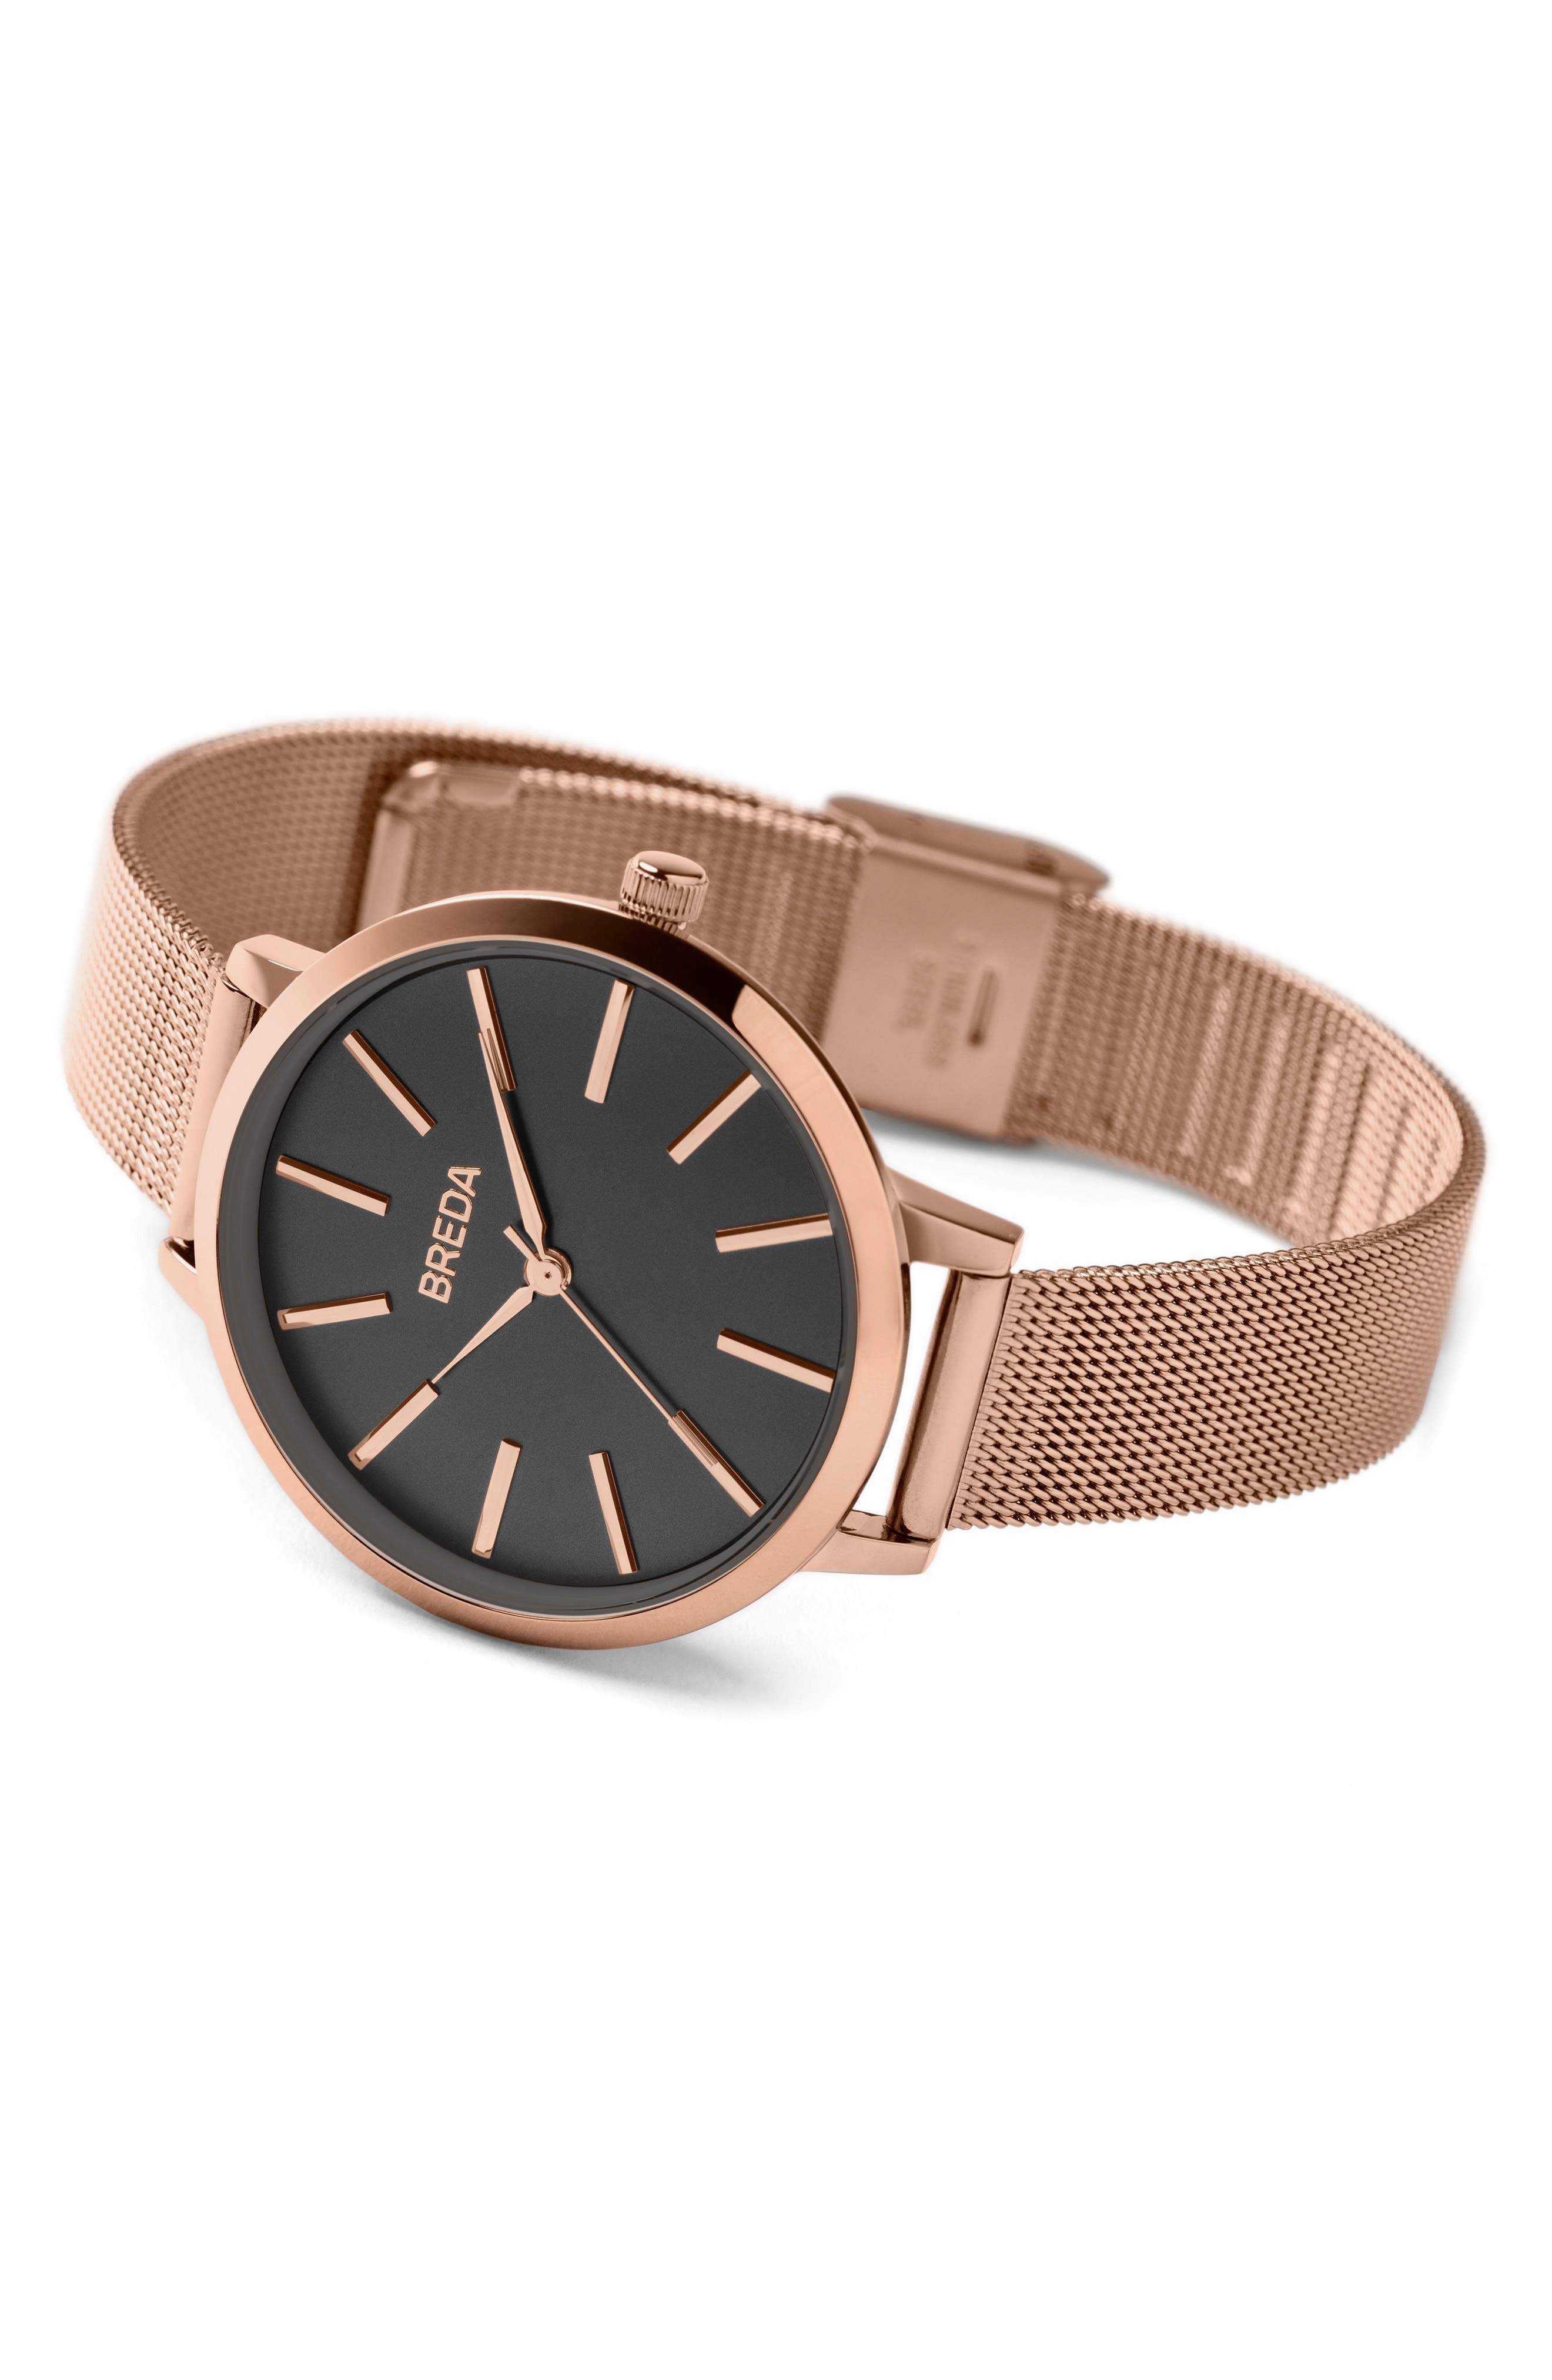 Joule Mesh Strap Watch, 37mm,                             Alternate thumbnail 3, color,                             Rose Gold/ Black/ Rose Gold